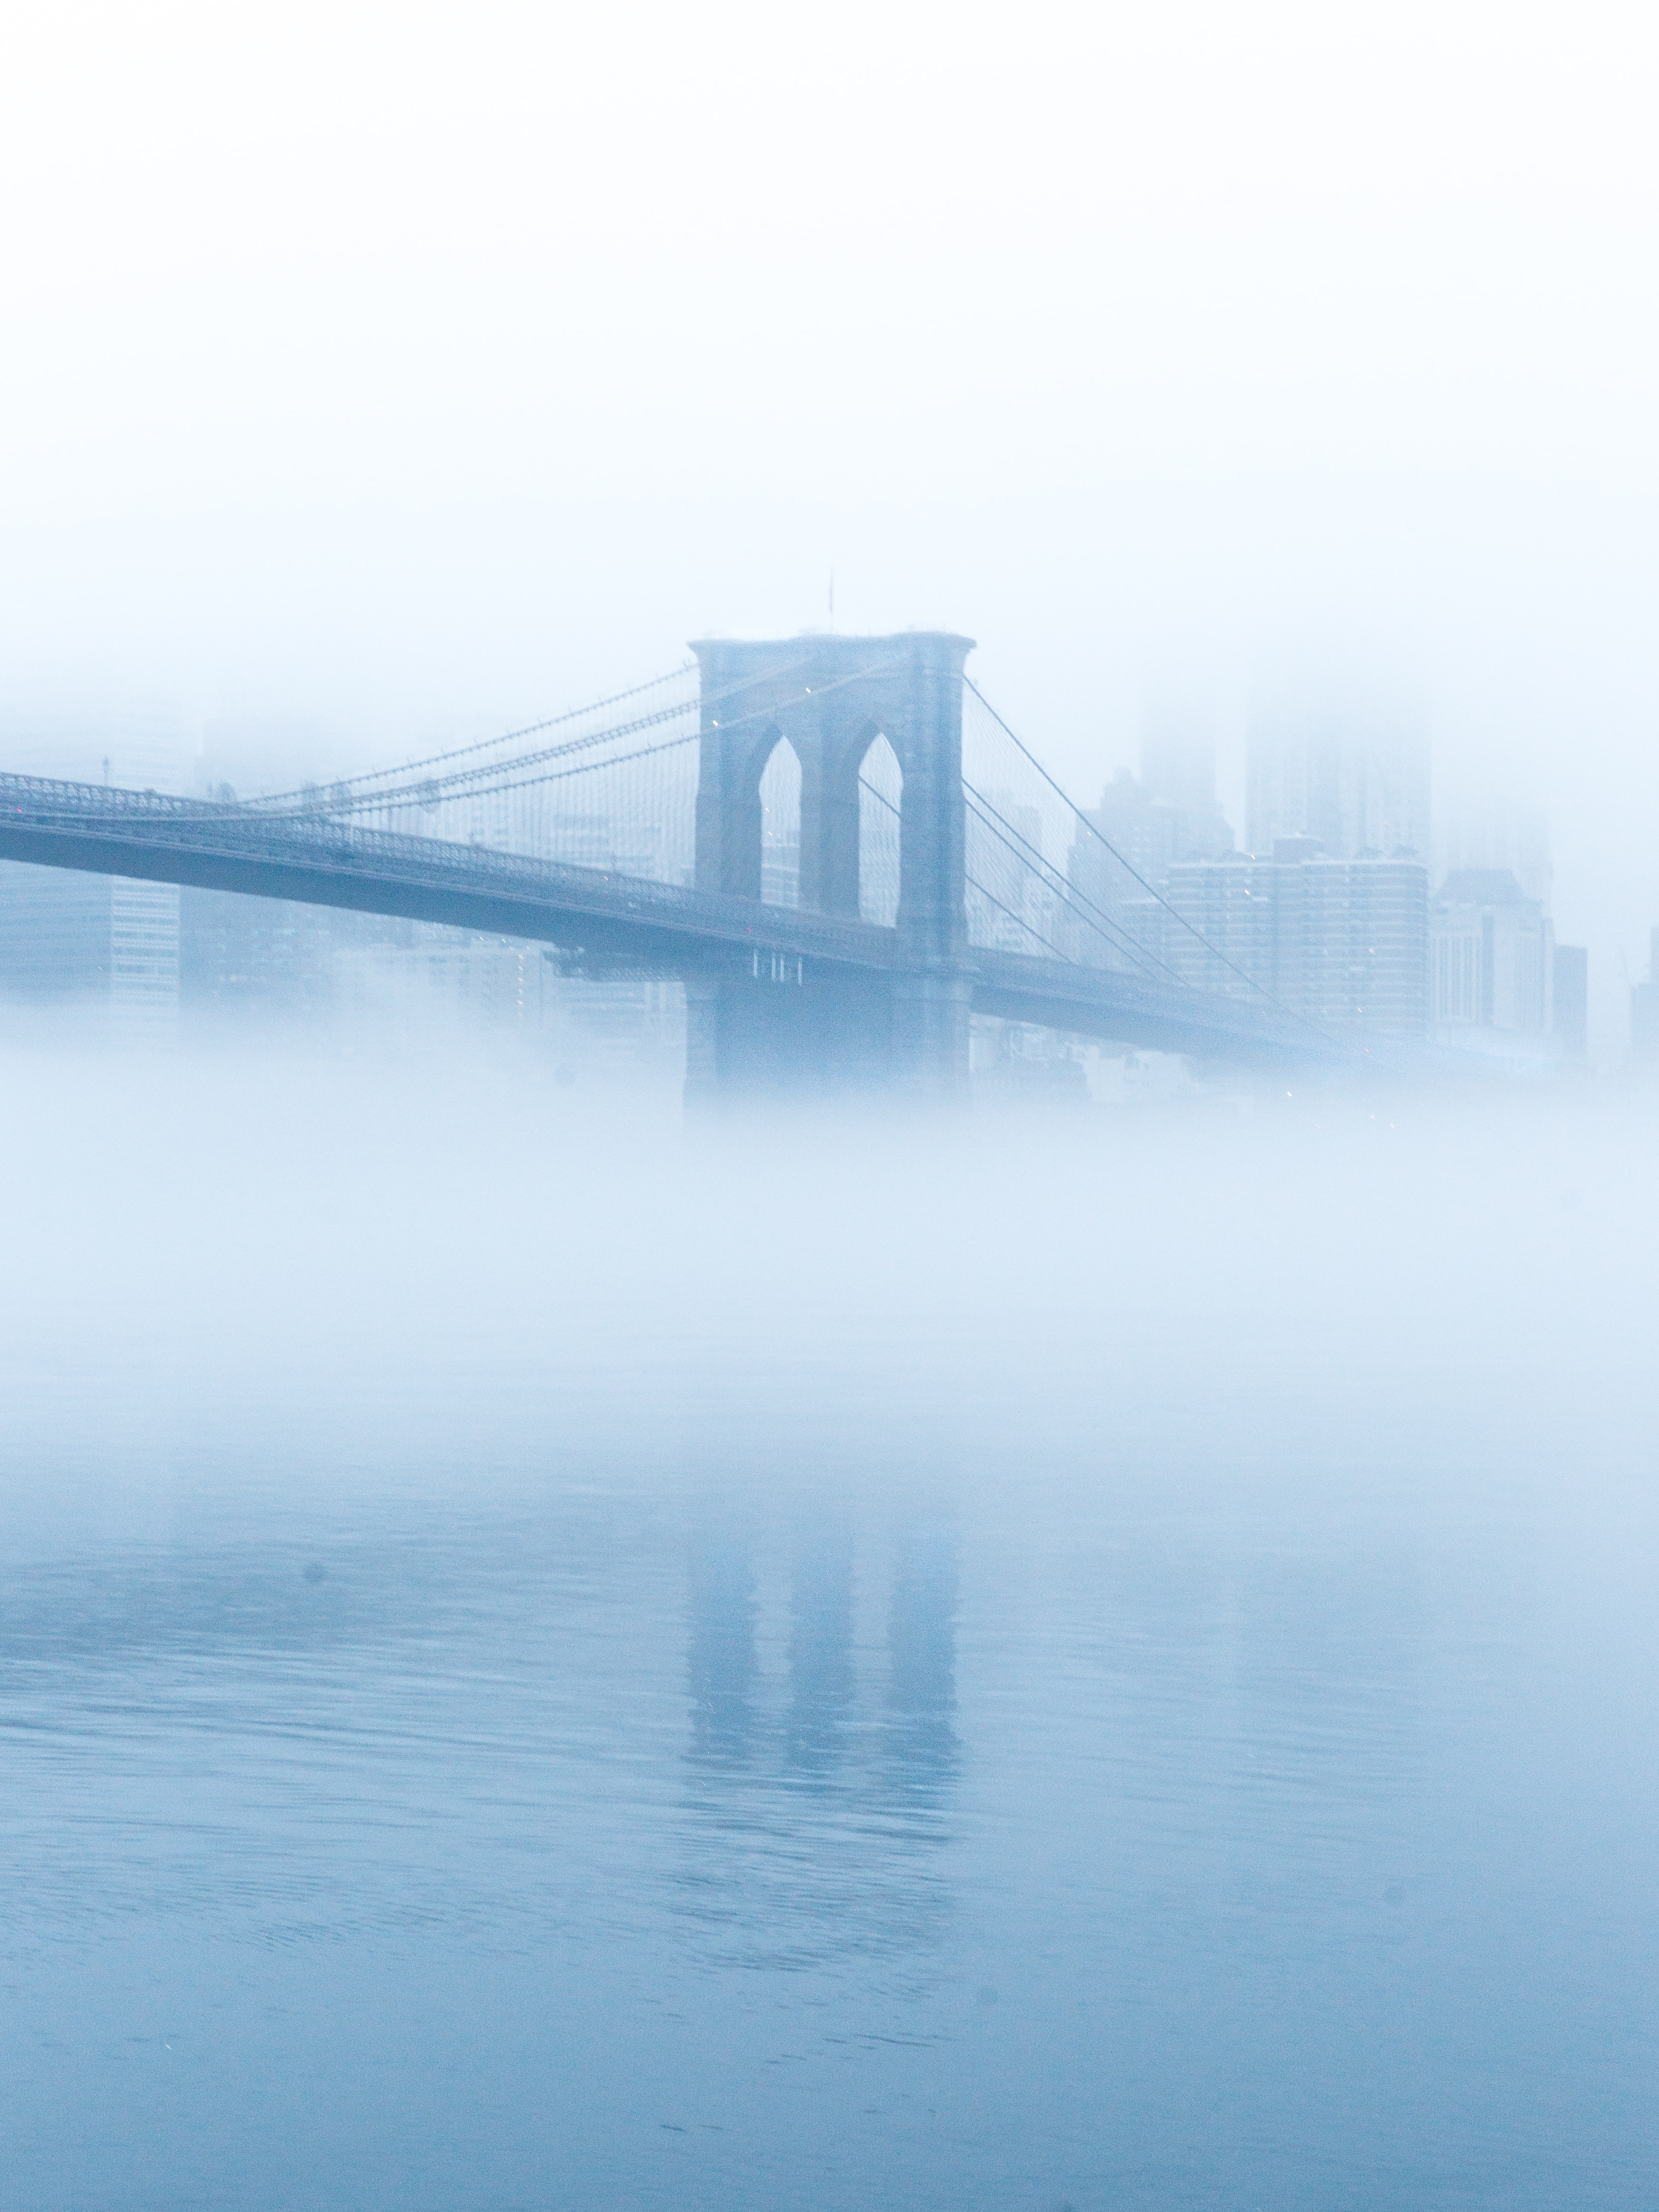 Brooklyn bridge surrounded by fog